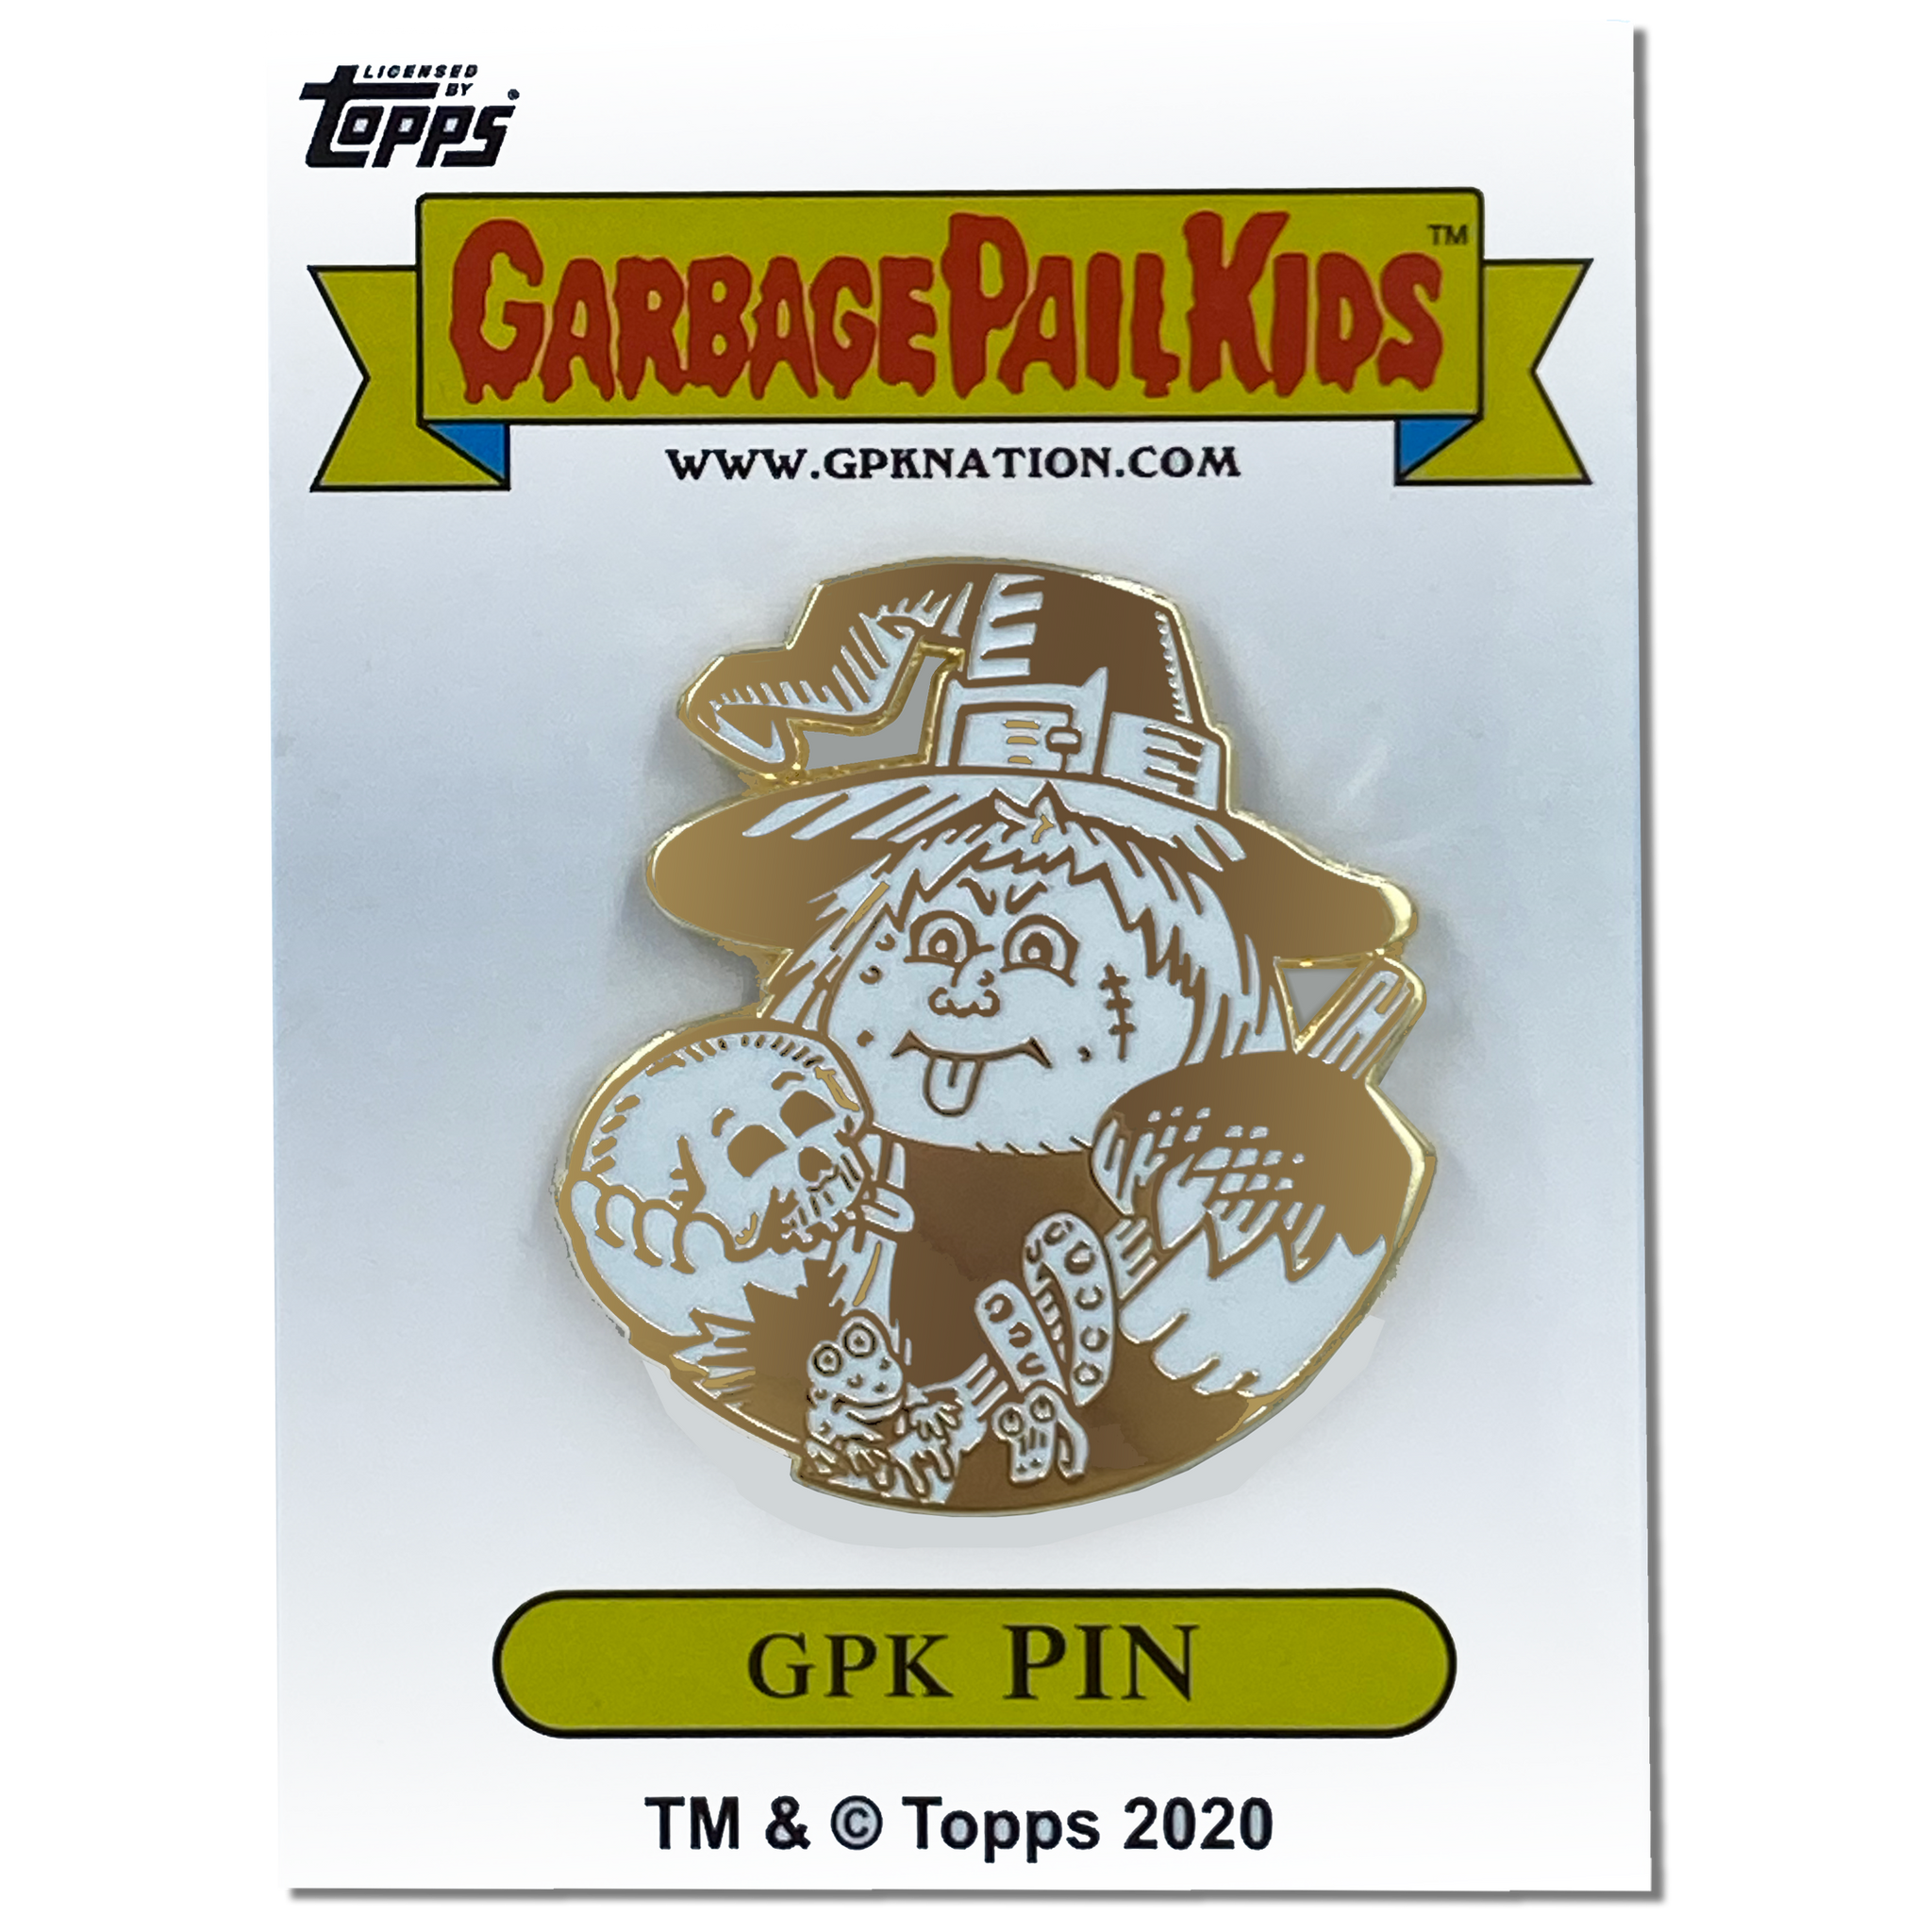 GPK-AA-007 WEIRD WENDY / HAGGY MAGGIE Topps Officially Licensed David Gross Artist Collaboration GPK Pin Garbage Pail Kids